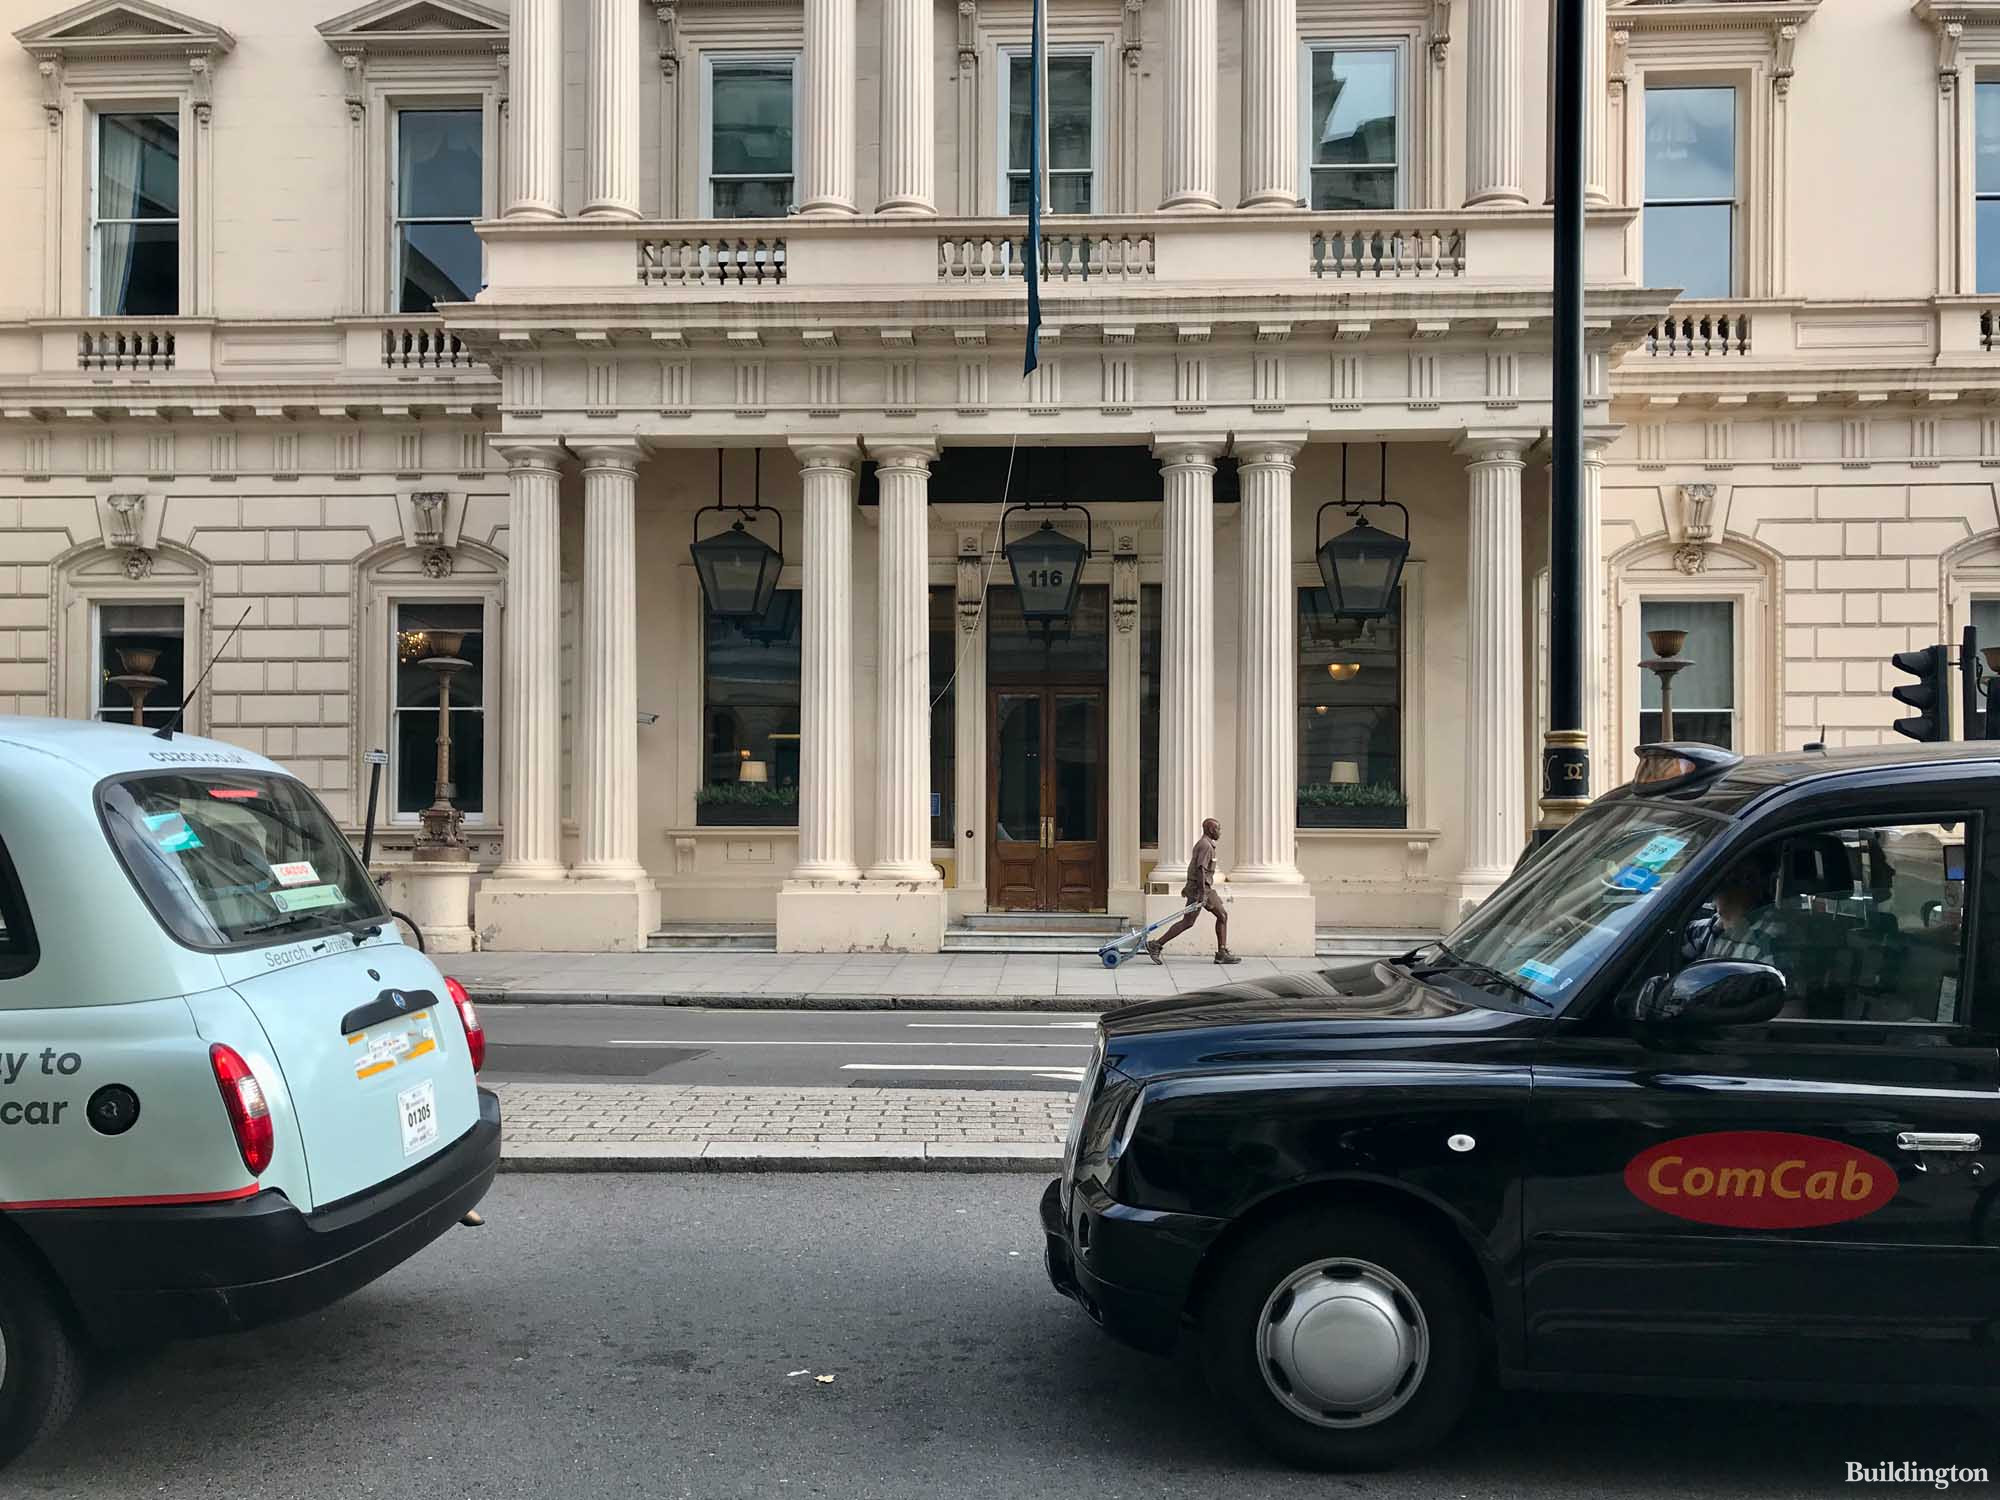 In front of the Institute of Directors building on Pall Mall.